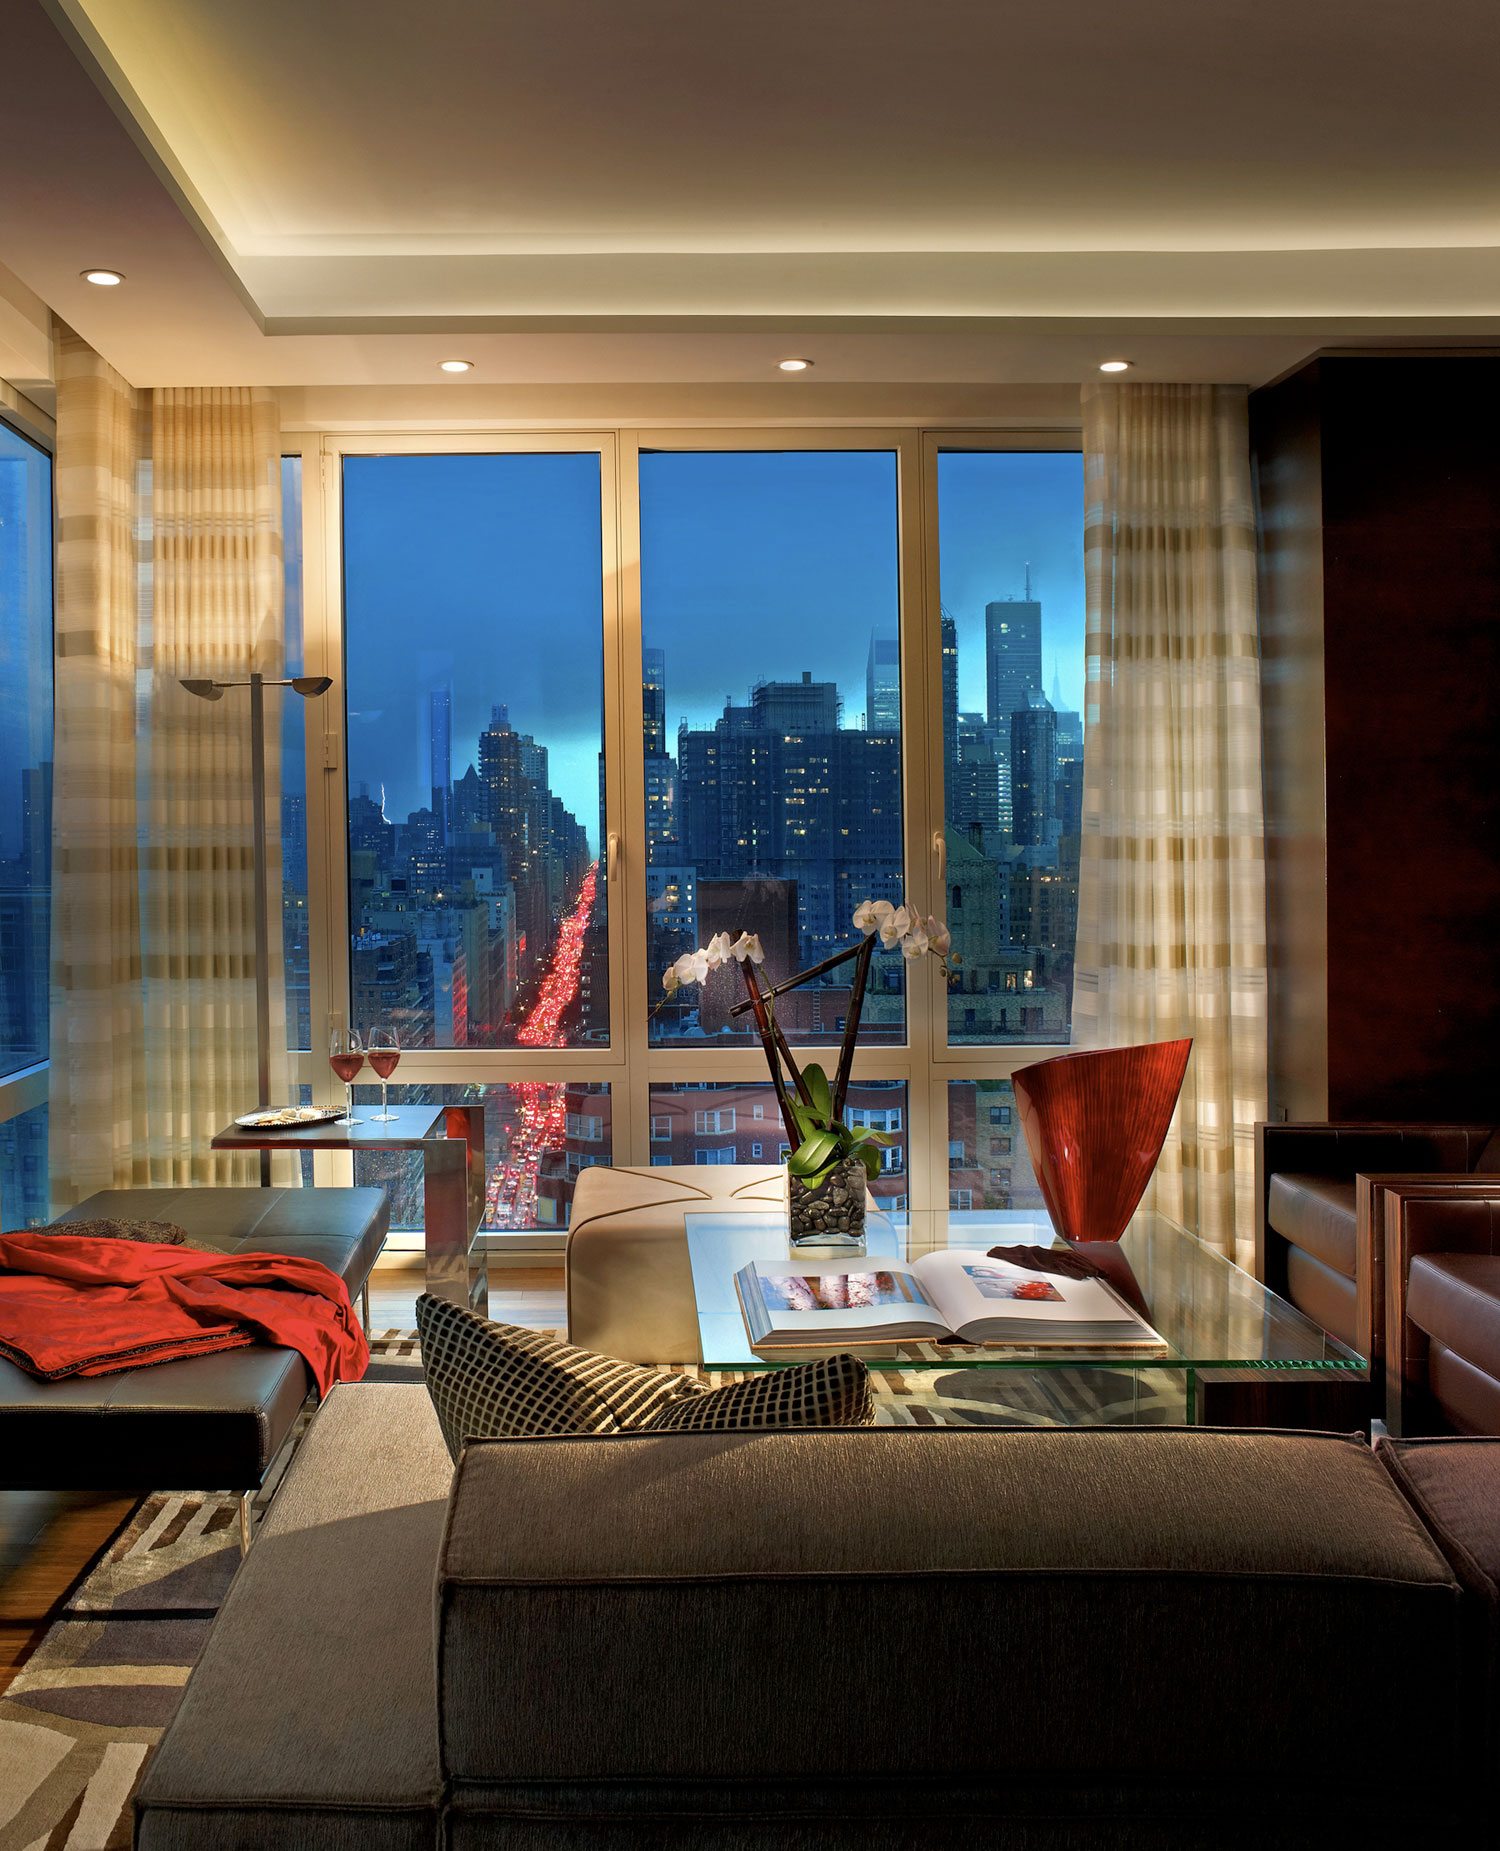 beautiful-view-of-city-skyline-from-modern-living-room-penthouse-apartment-New-York-with-cozy-seating-design-ideas.